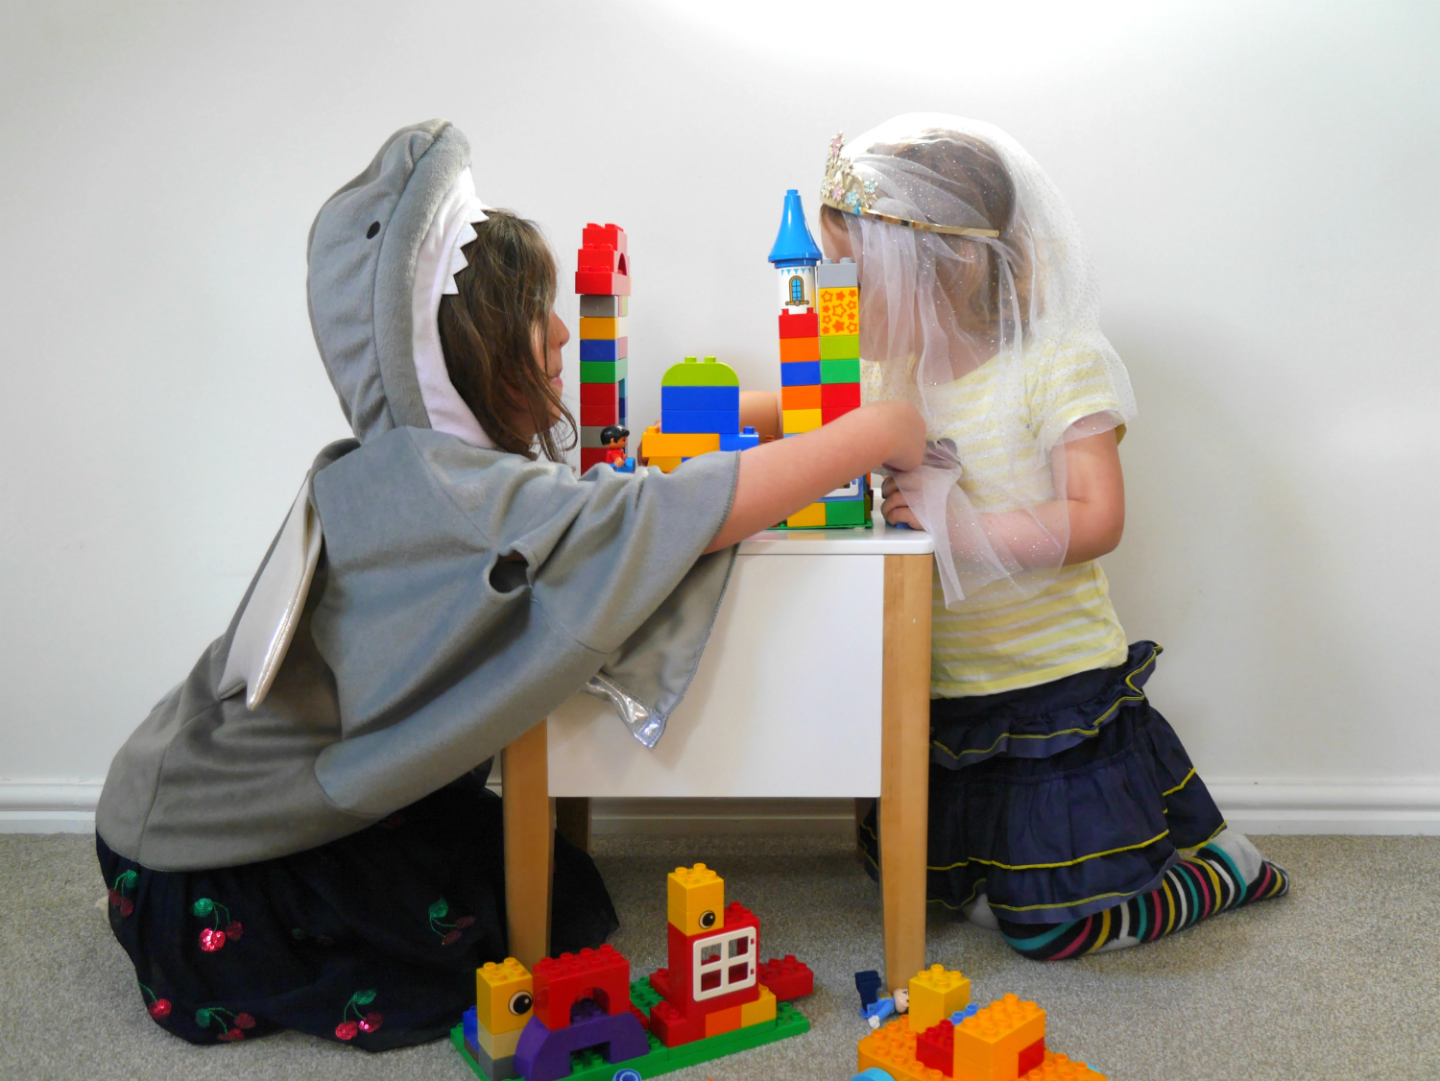 Making a DIY Lego table from the GLTC potter stool